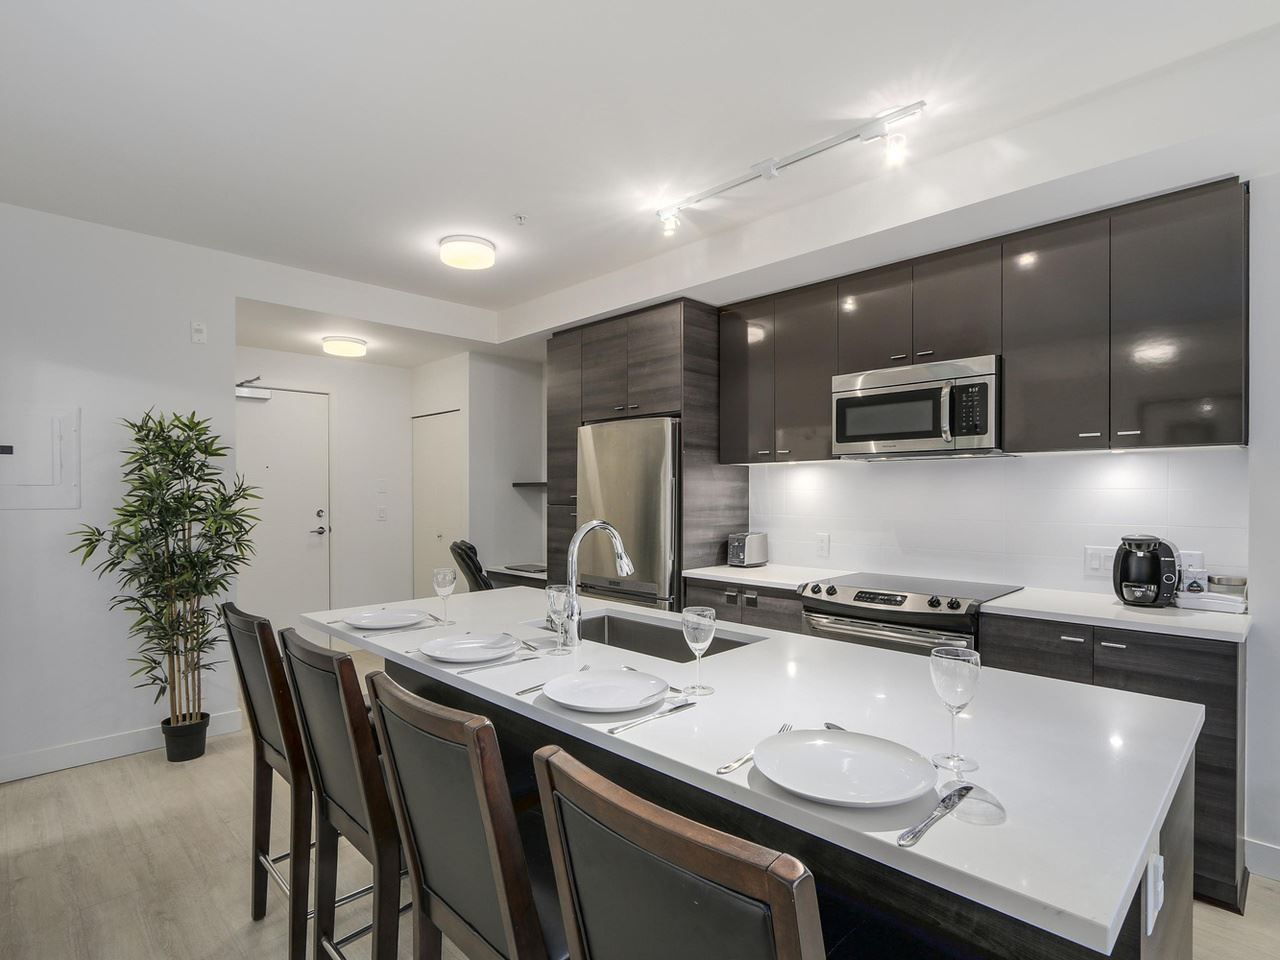 Fantastic gourmet kitchen with stainless steel appliances and quartz counters